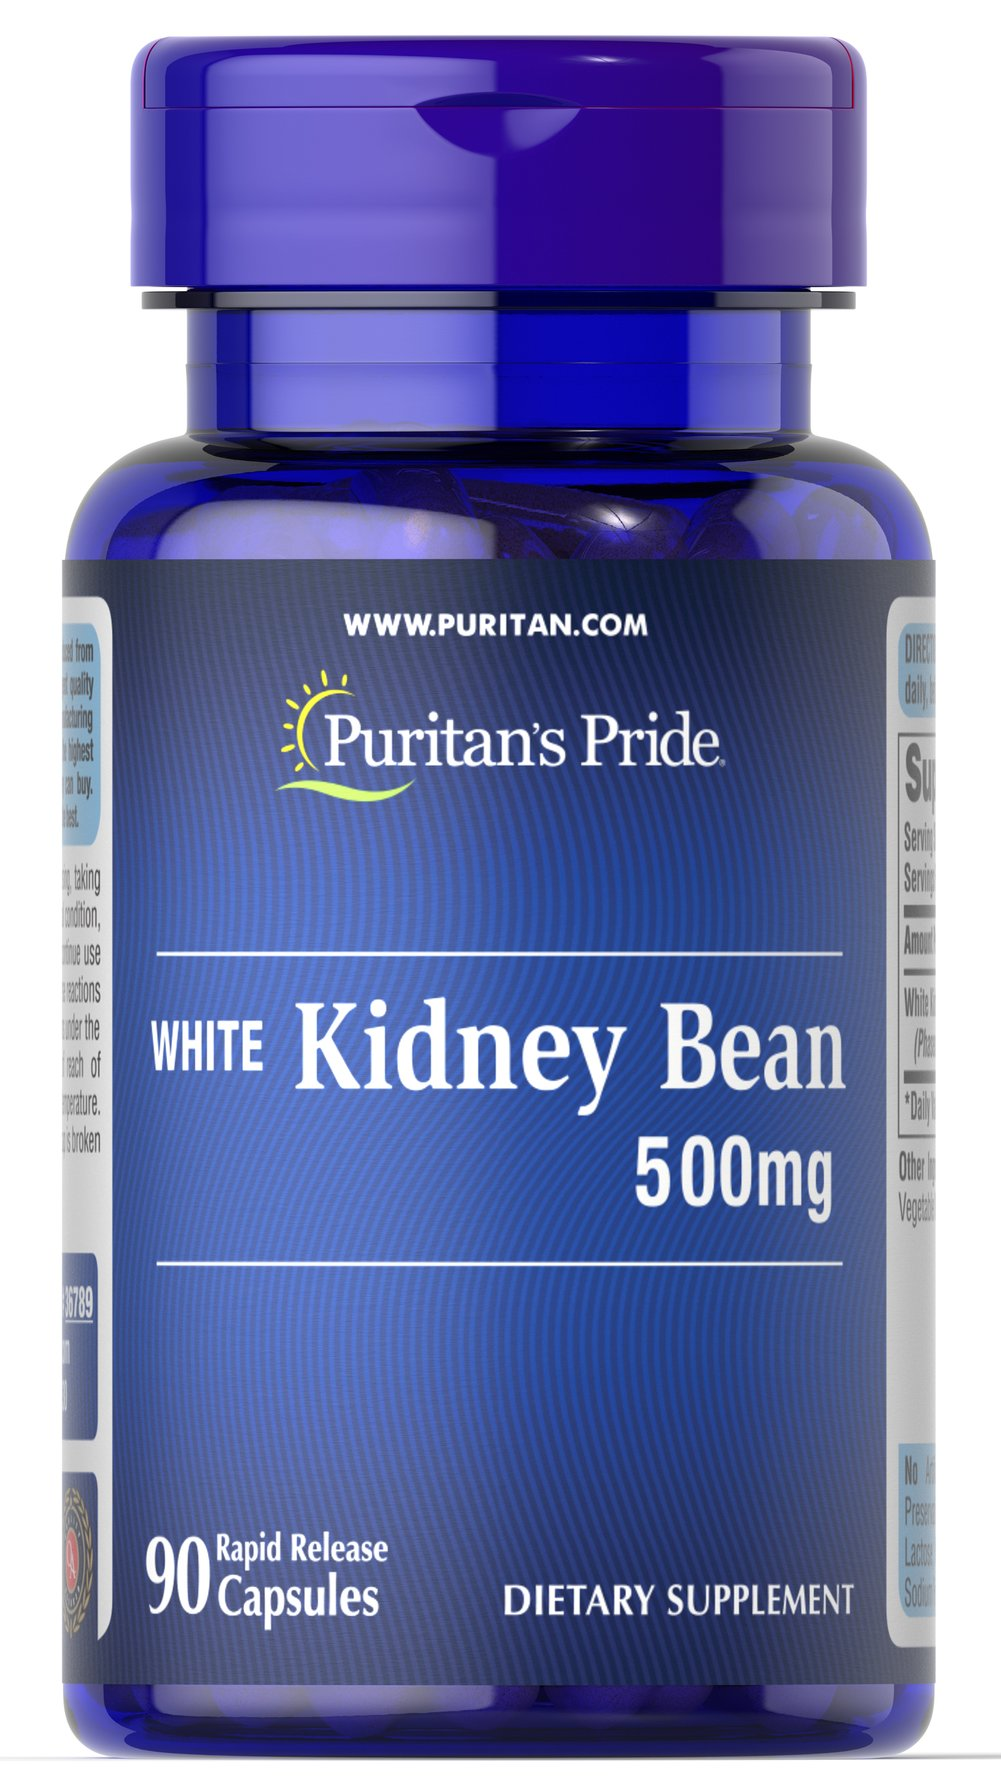 White Kidney Bean <p>White Kidney Bean (Phaseolus vulgaris) has a long history as a culinary ingredient. White Kidney Beans are a source of Vitamin B-6, iron and protein. Each serving of our white kidney bean supplement delivers 1500 mg of white kidney bean to your diet. </p><p></p> 90 Capsules 500 mg $20.99